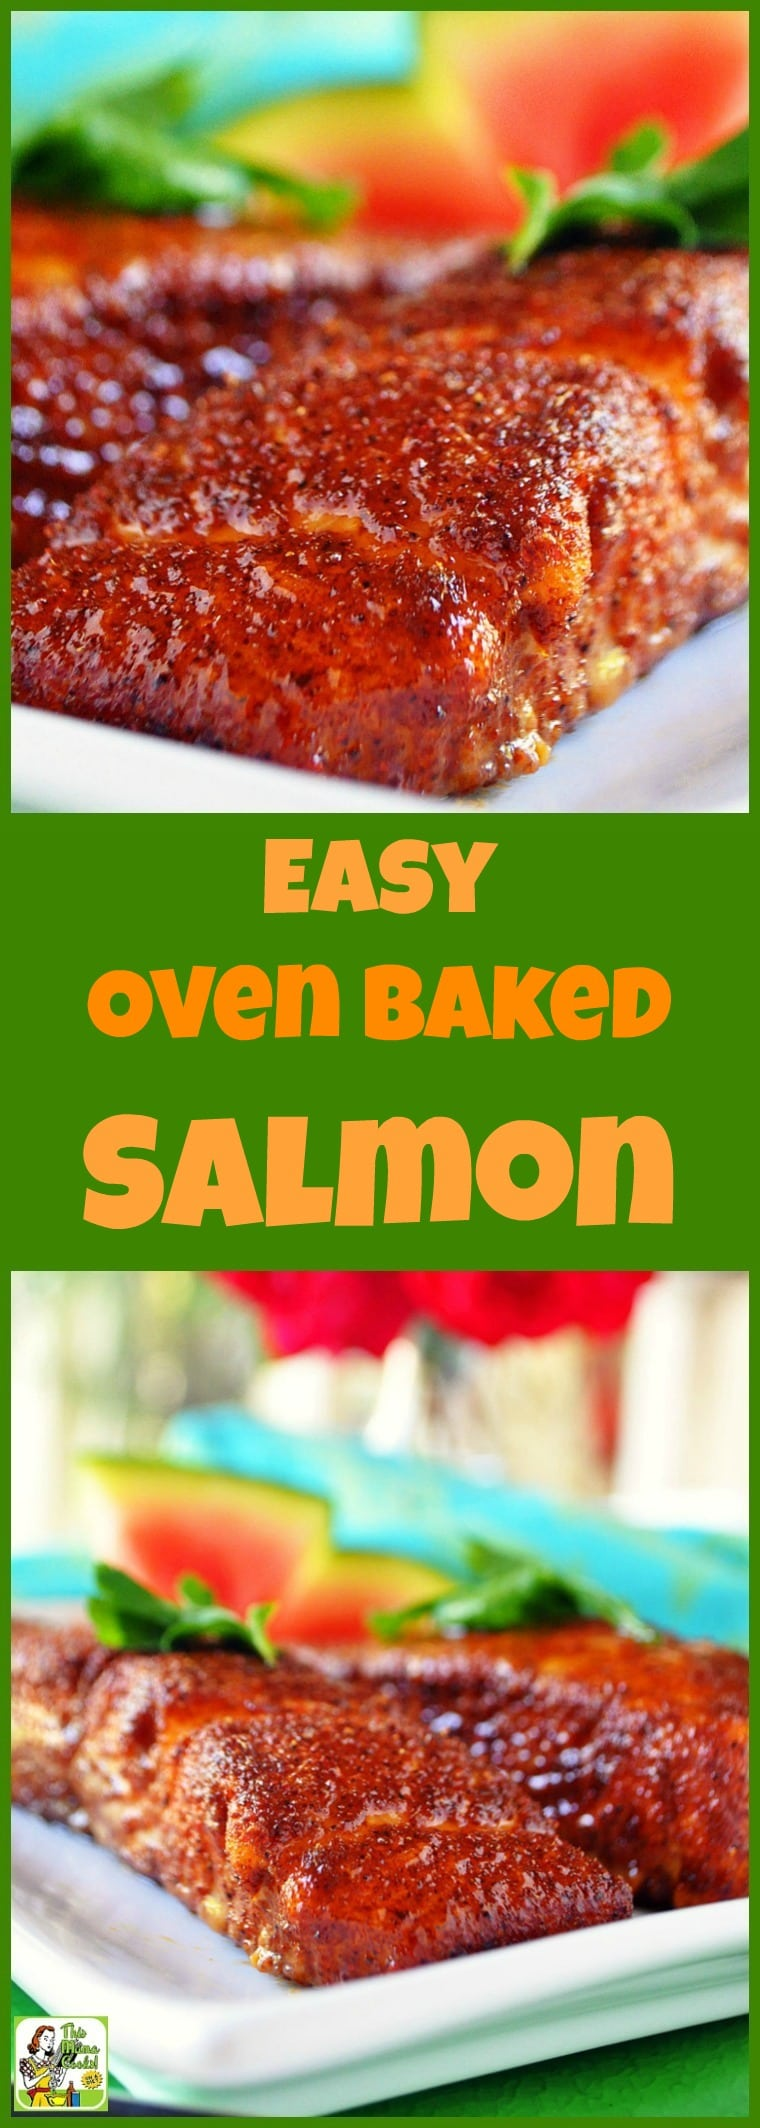 Love salmon but don't know how to cook it? Try this Easy Oven Baked Salmon recipe. This easy fish recipe that can be made in under 25 minutes. #recipes #easy #recipeoftheday #glutenfree #easyrecipe #easyrecipes #glutenfreerecipes #dinner #easydinner #dinnerrecipes #dinnerideas #fish #salmon